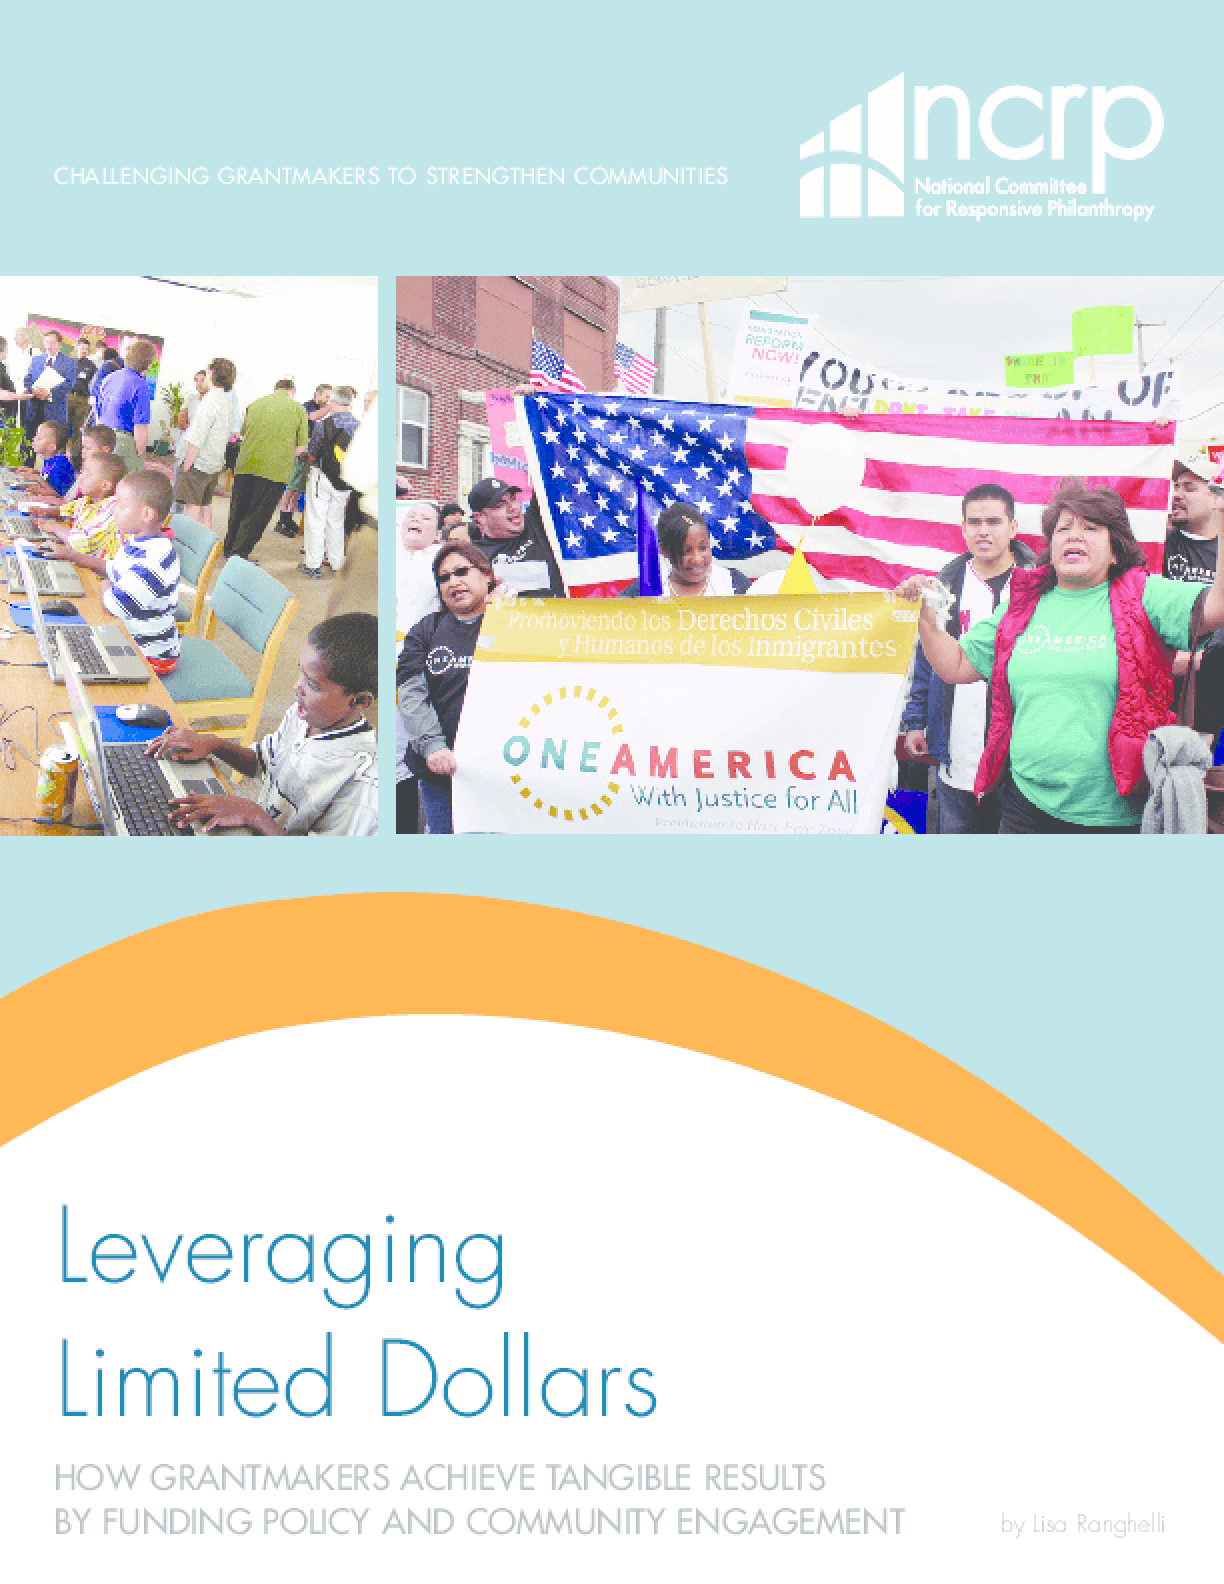 Leveraging Limited Dollars: How Grantmakers Achieve Tangible Benefits by Funding Policy and Community Engagement